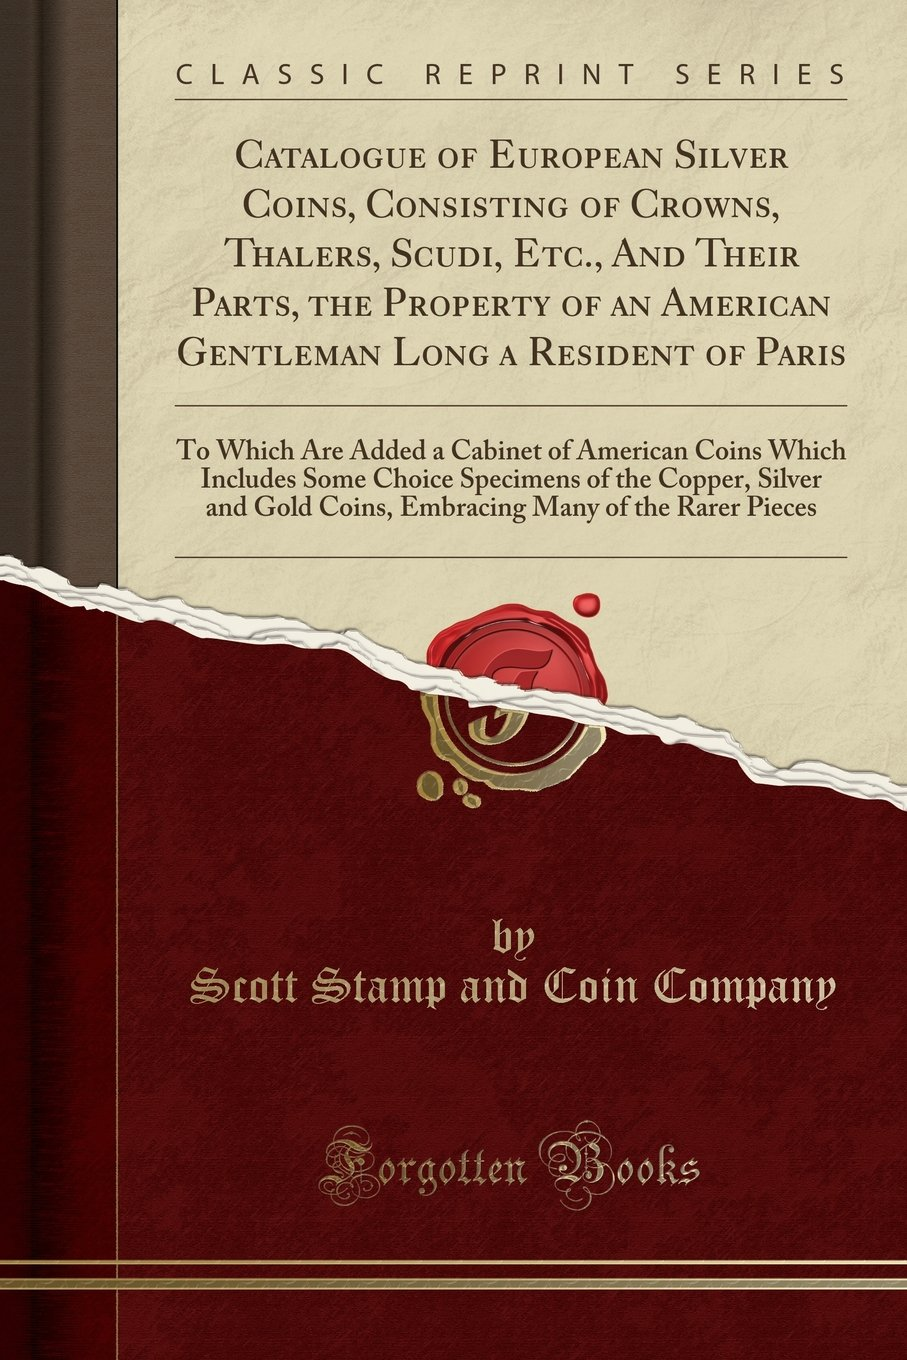 Catalogue of European Silver Coins, Consisting of Crowns, Thalers, Scudi, Etc., And Their Parts, the Property of an American Gentleman Long a Resident ... Includes Some Choice Specimens of the Cop pdf epub